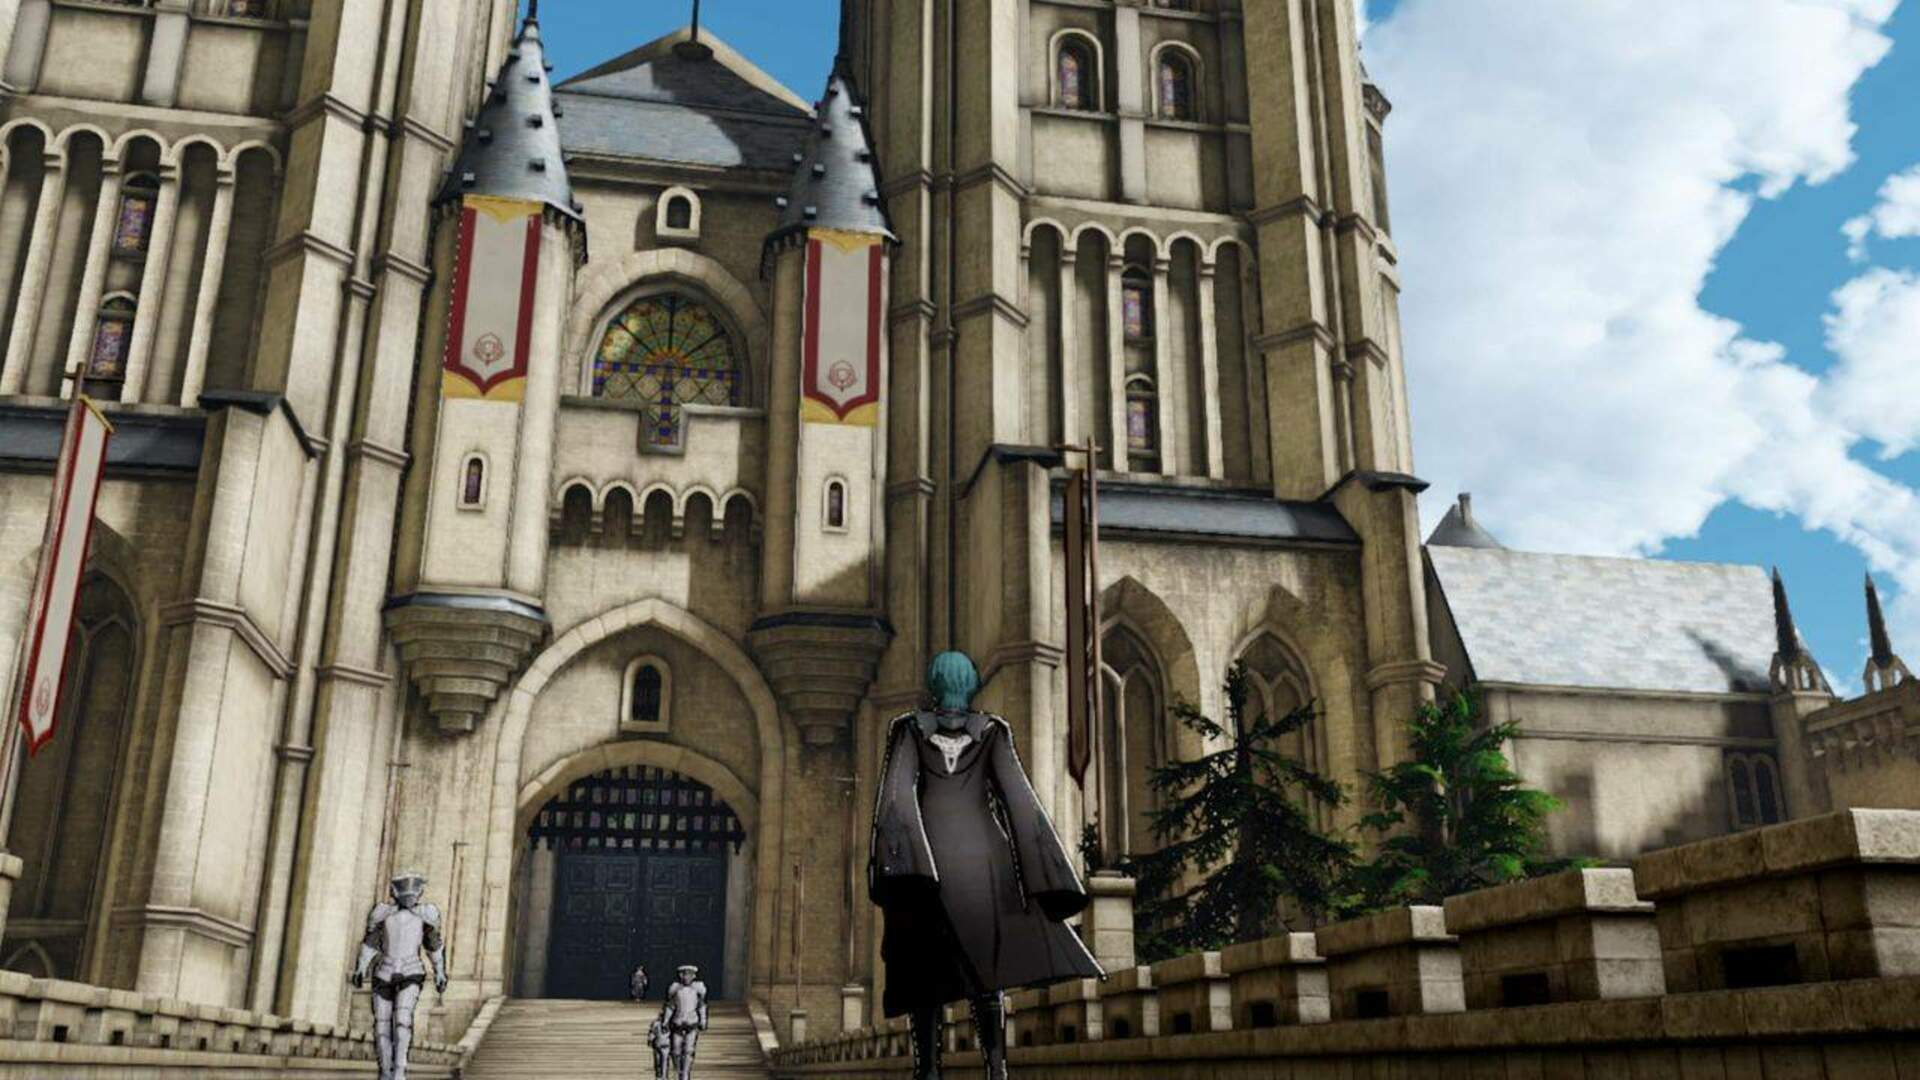 How Does Fire Emblem: Three Houses Stack Up Against Persona, Bully, and Other Games With School Settings?